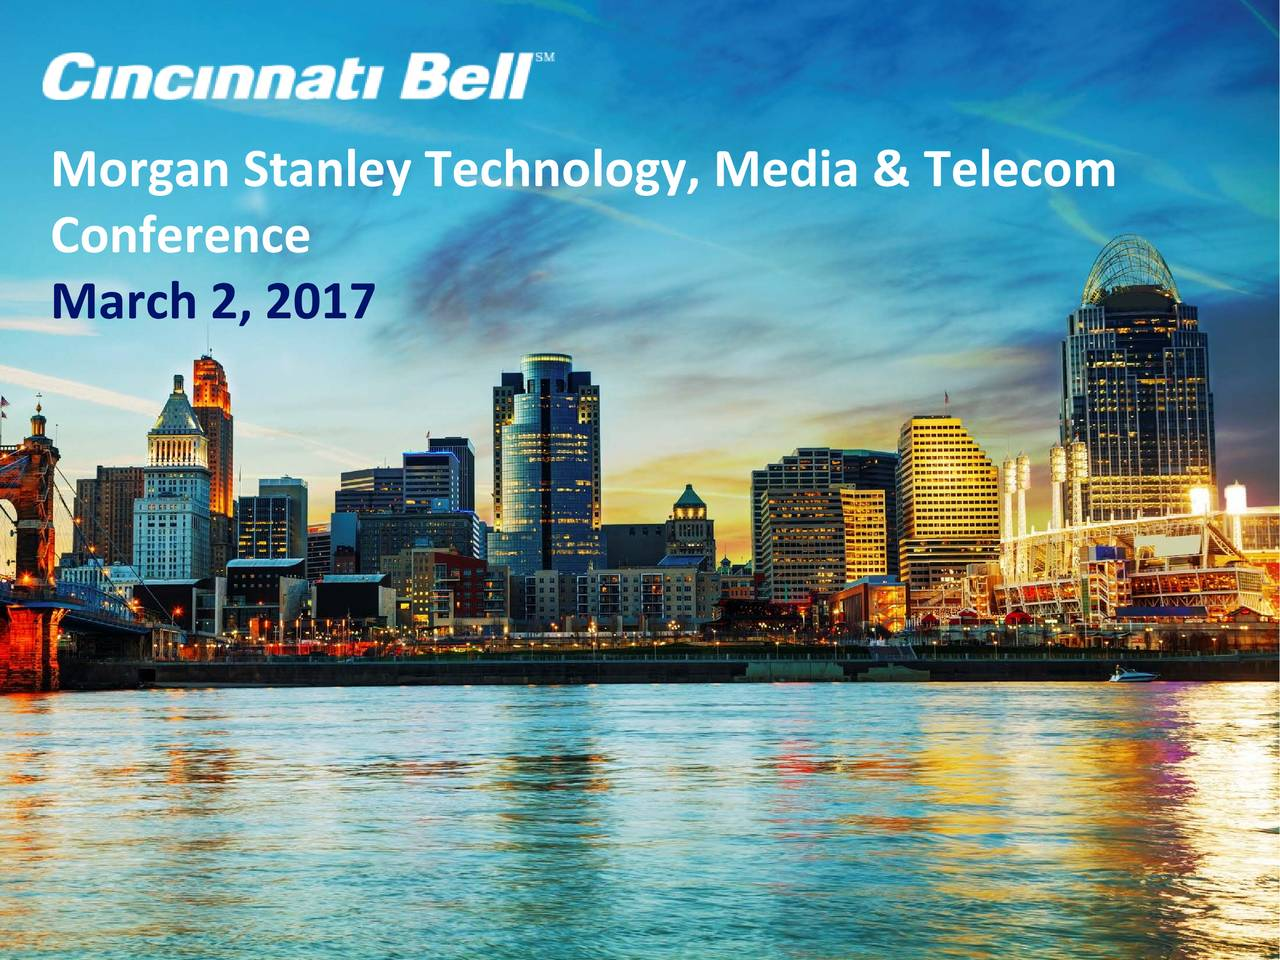 Morgan Stanley Technology, Media & Telecom Conference March 2, 2017 I. Review of Cincinnati Bell (CBB) Today